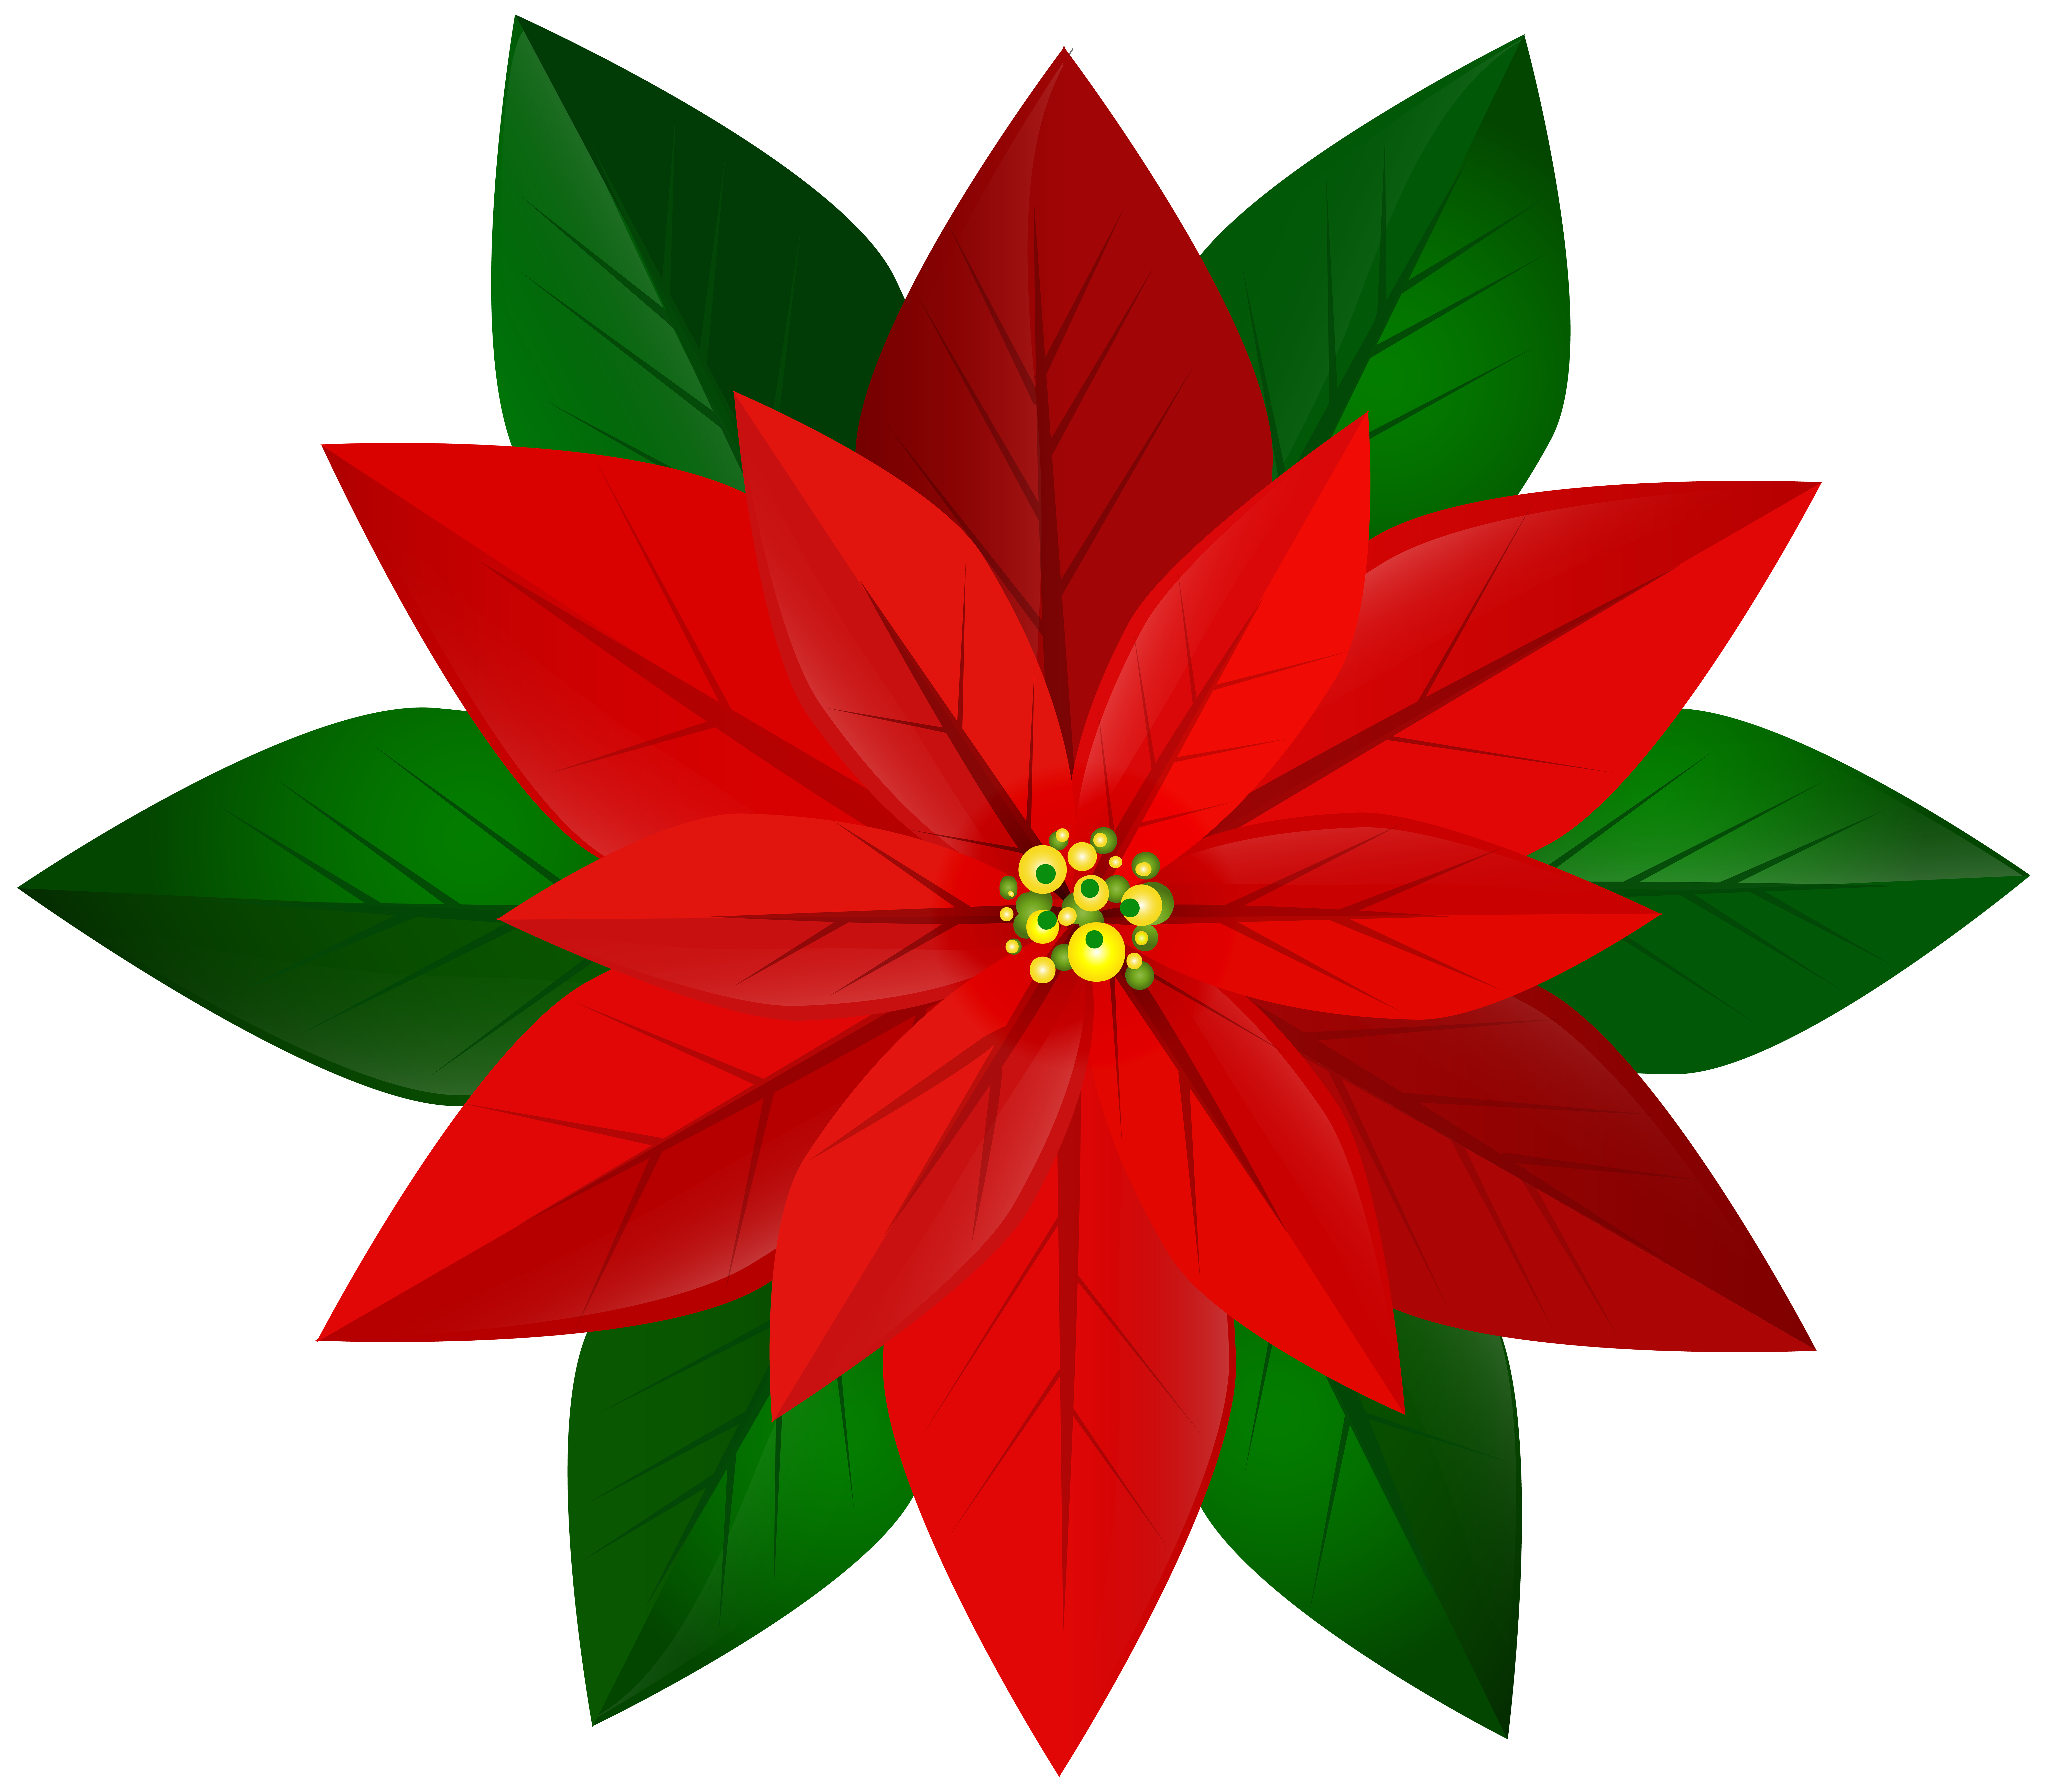 Poinsettias clipart bow. Christmas red poinsettia png